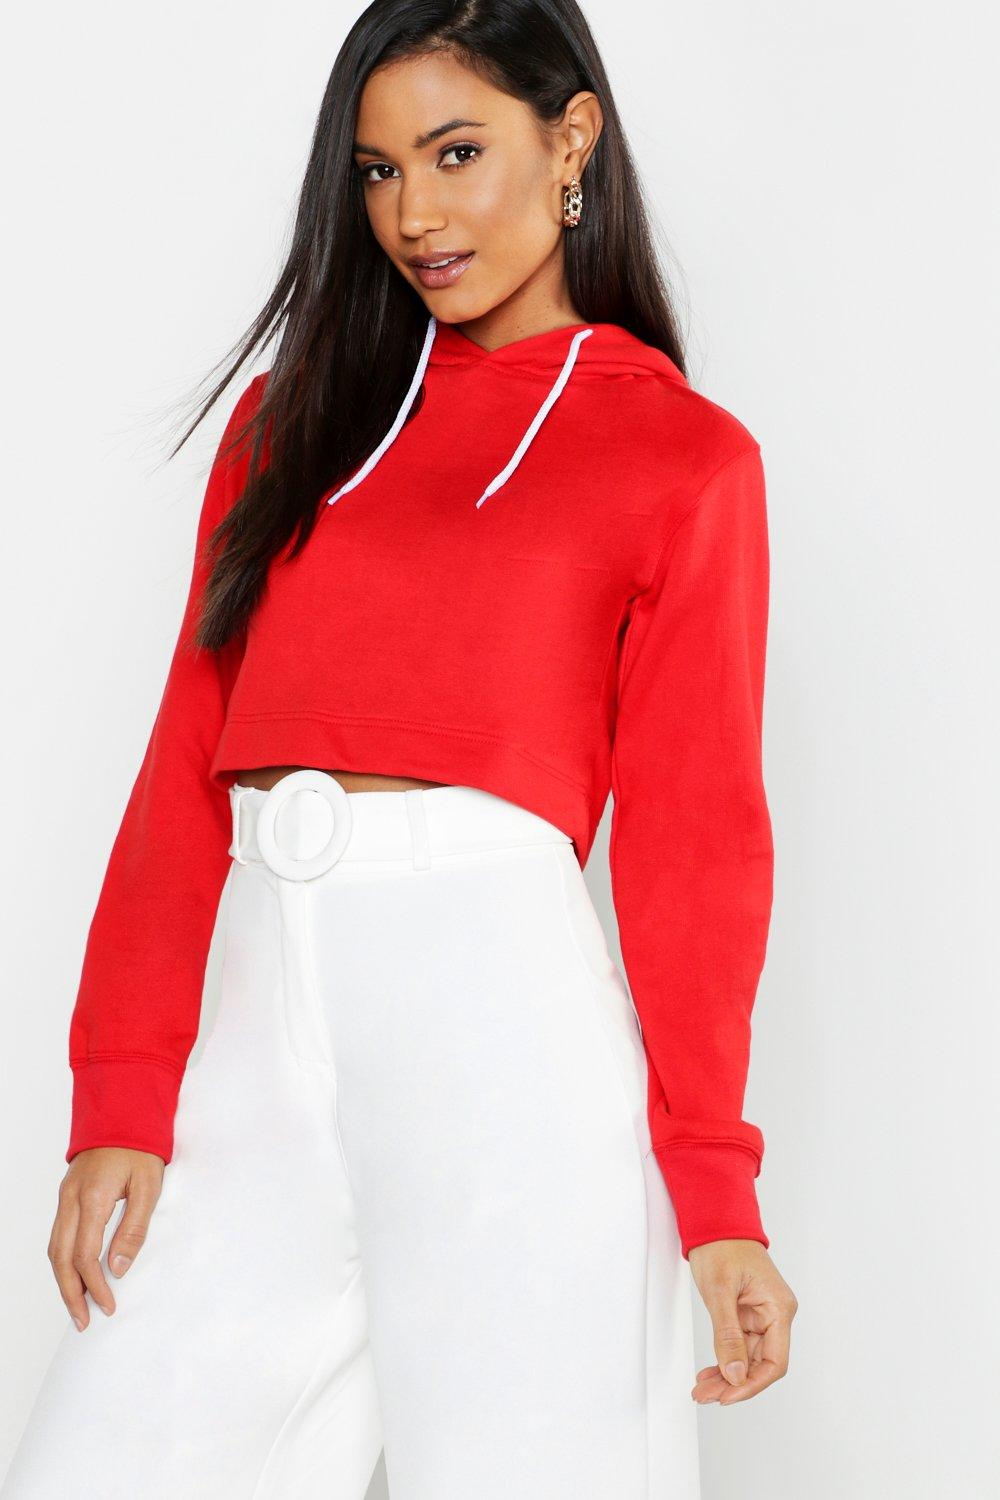 Crop Athleisure Hoodie red Hoodie red Athleisure red Crop Crop Hoodie Athleisure wxfBH1wUq